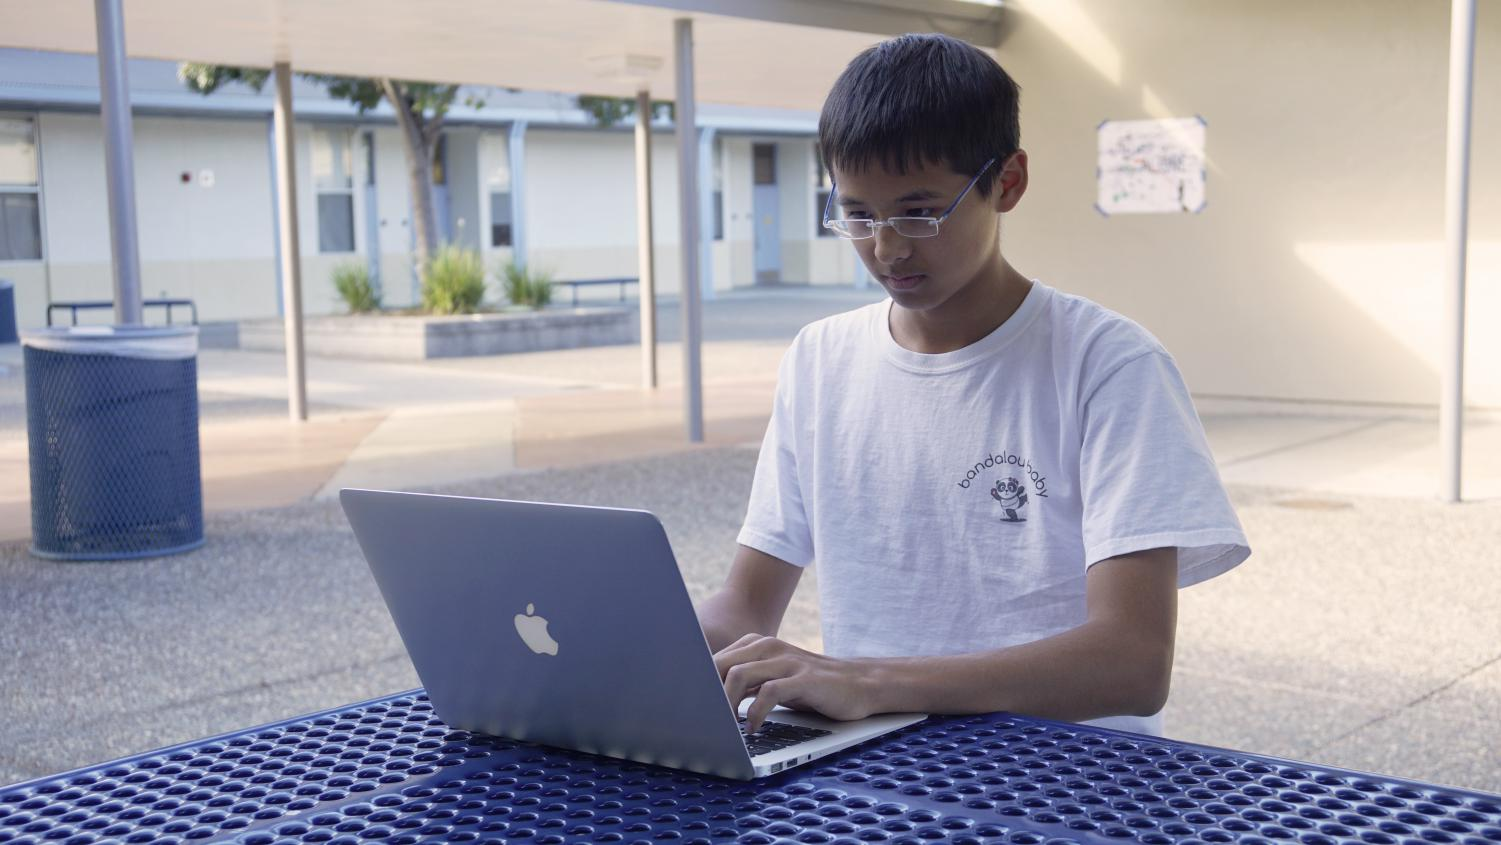 Sophomore Alex Siesel works on the finances for his mom's startup company, Bandalou Baby. Since its launch, Alex has taken on the role of Director of Operations.